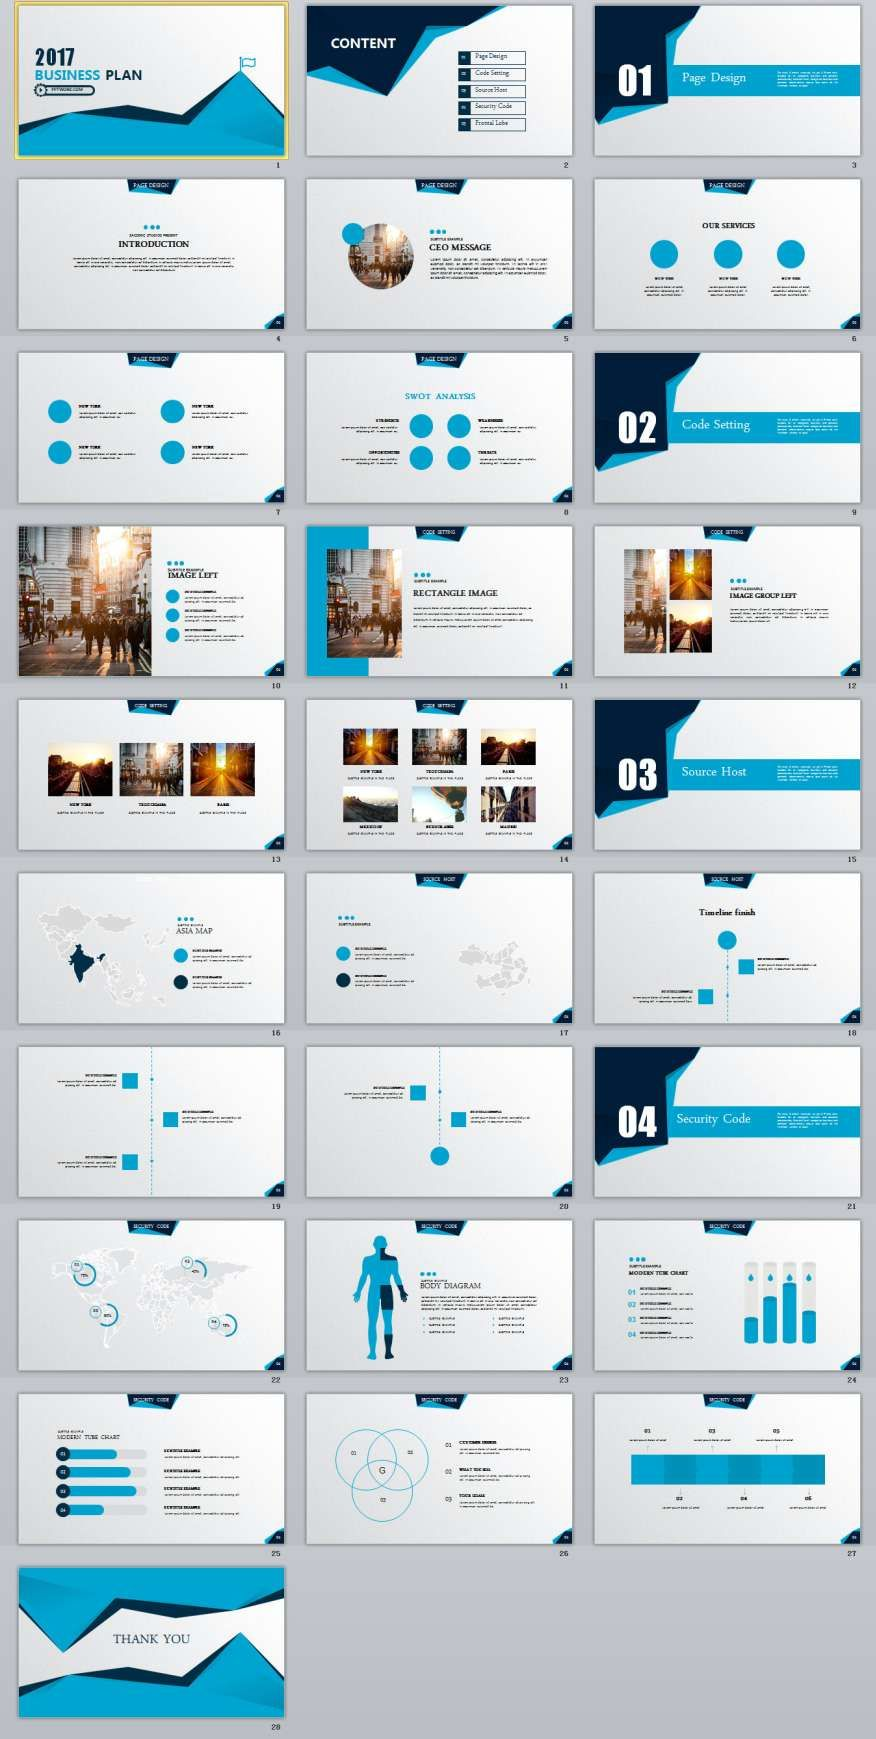 Best Business Plan PowerPoint Templates The Highest Quality - Keynote business plan template